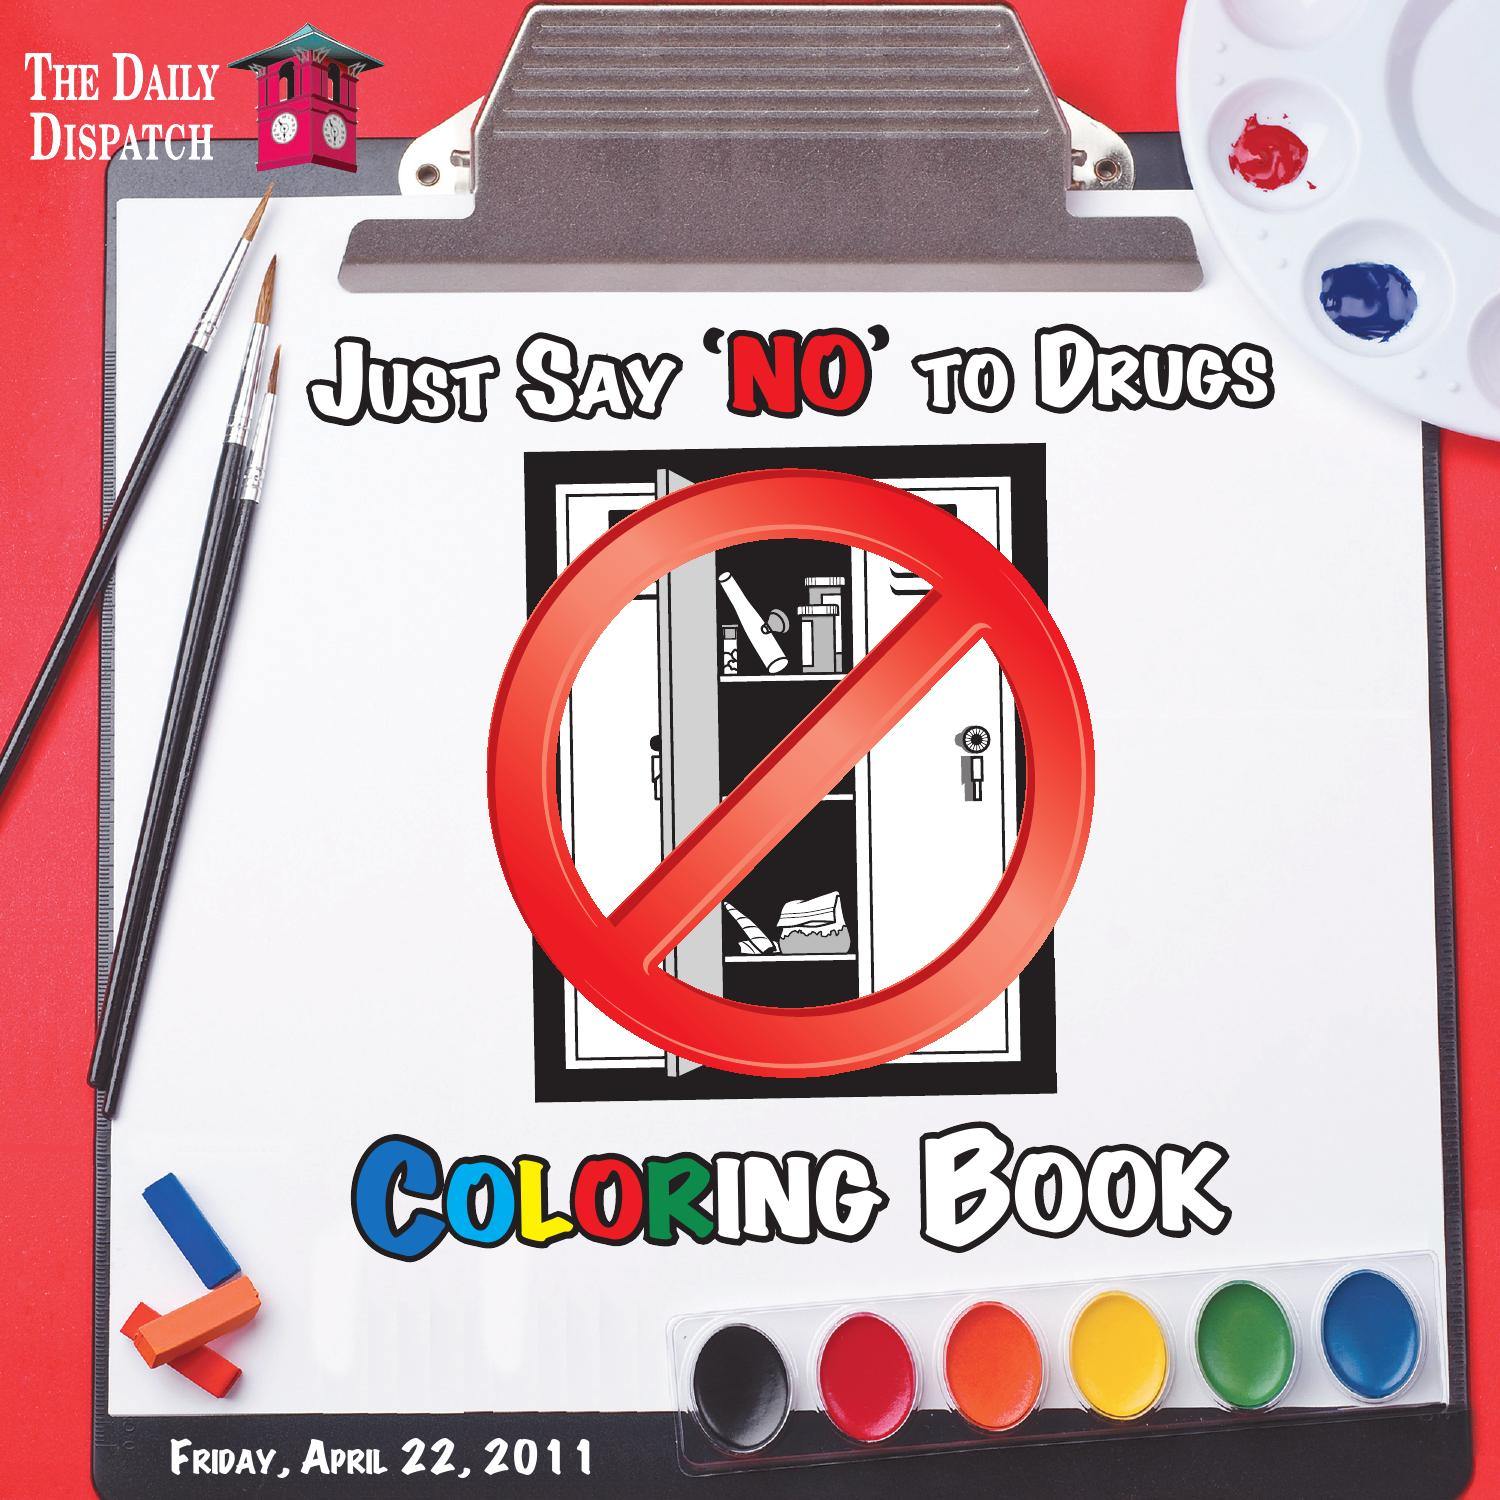 Just Say No To Drugs Coloring Book April 22 2011 By The